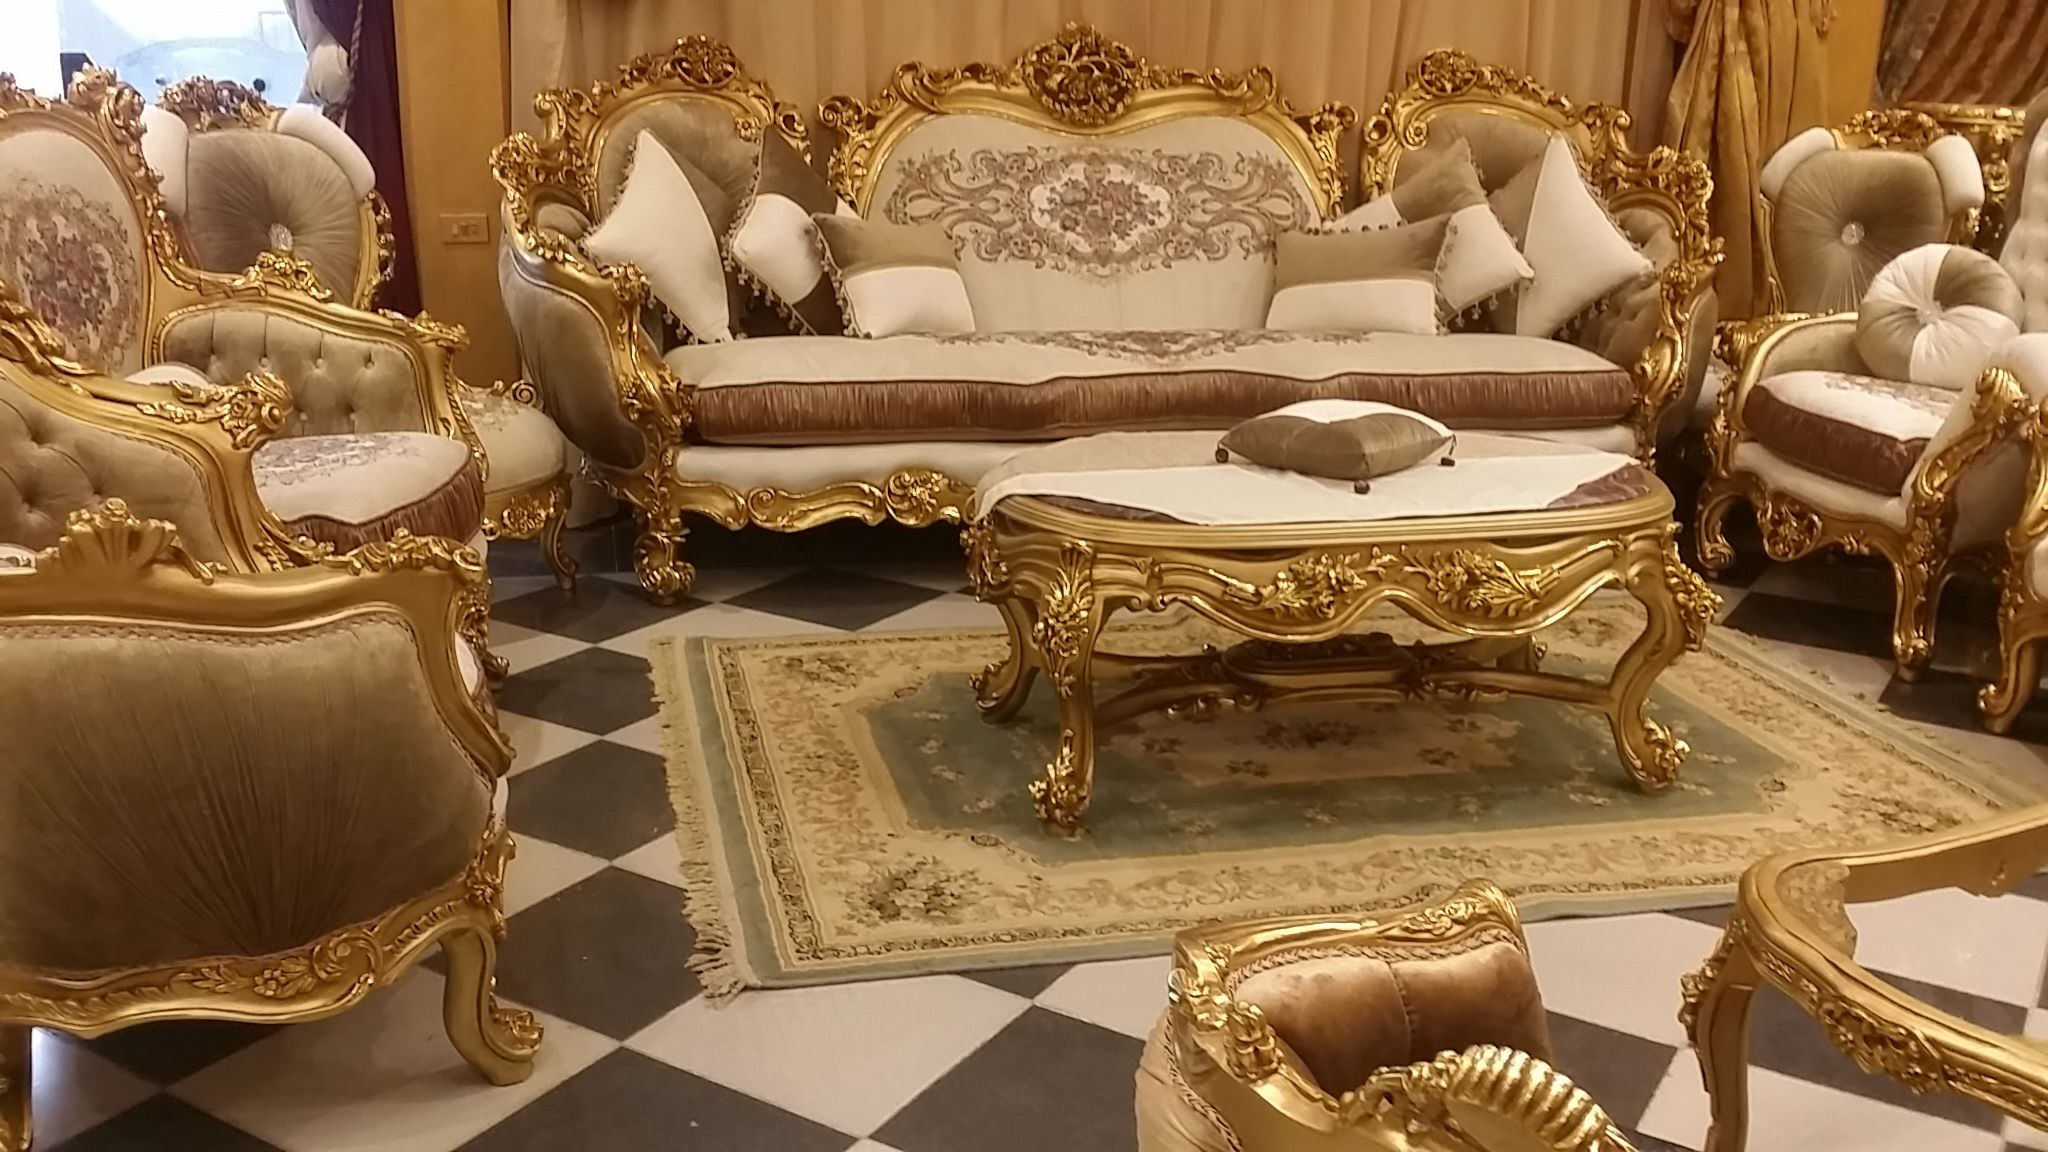 Mebel dan Furniture Jepara Elegant Soffa Gold sofa